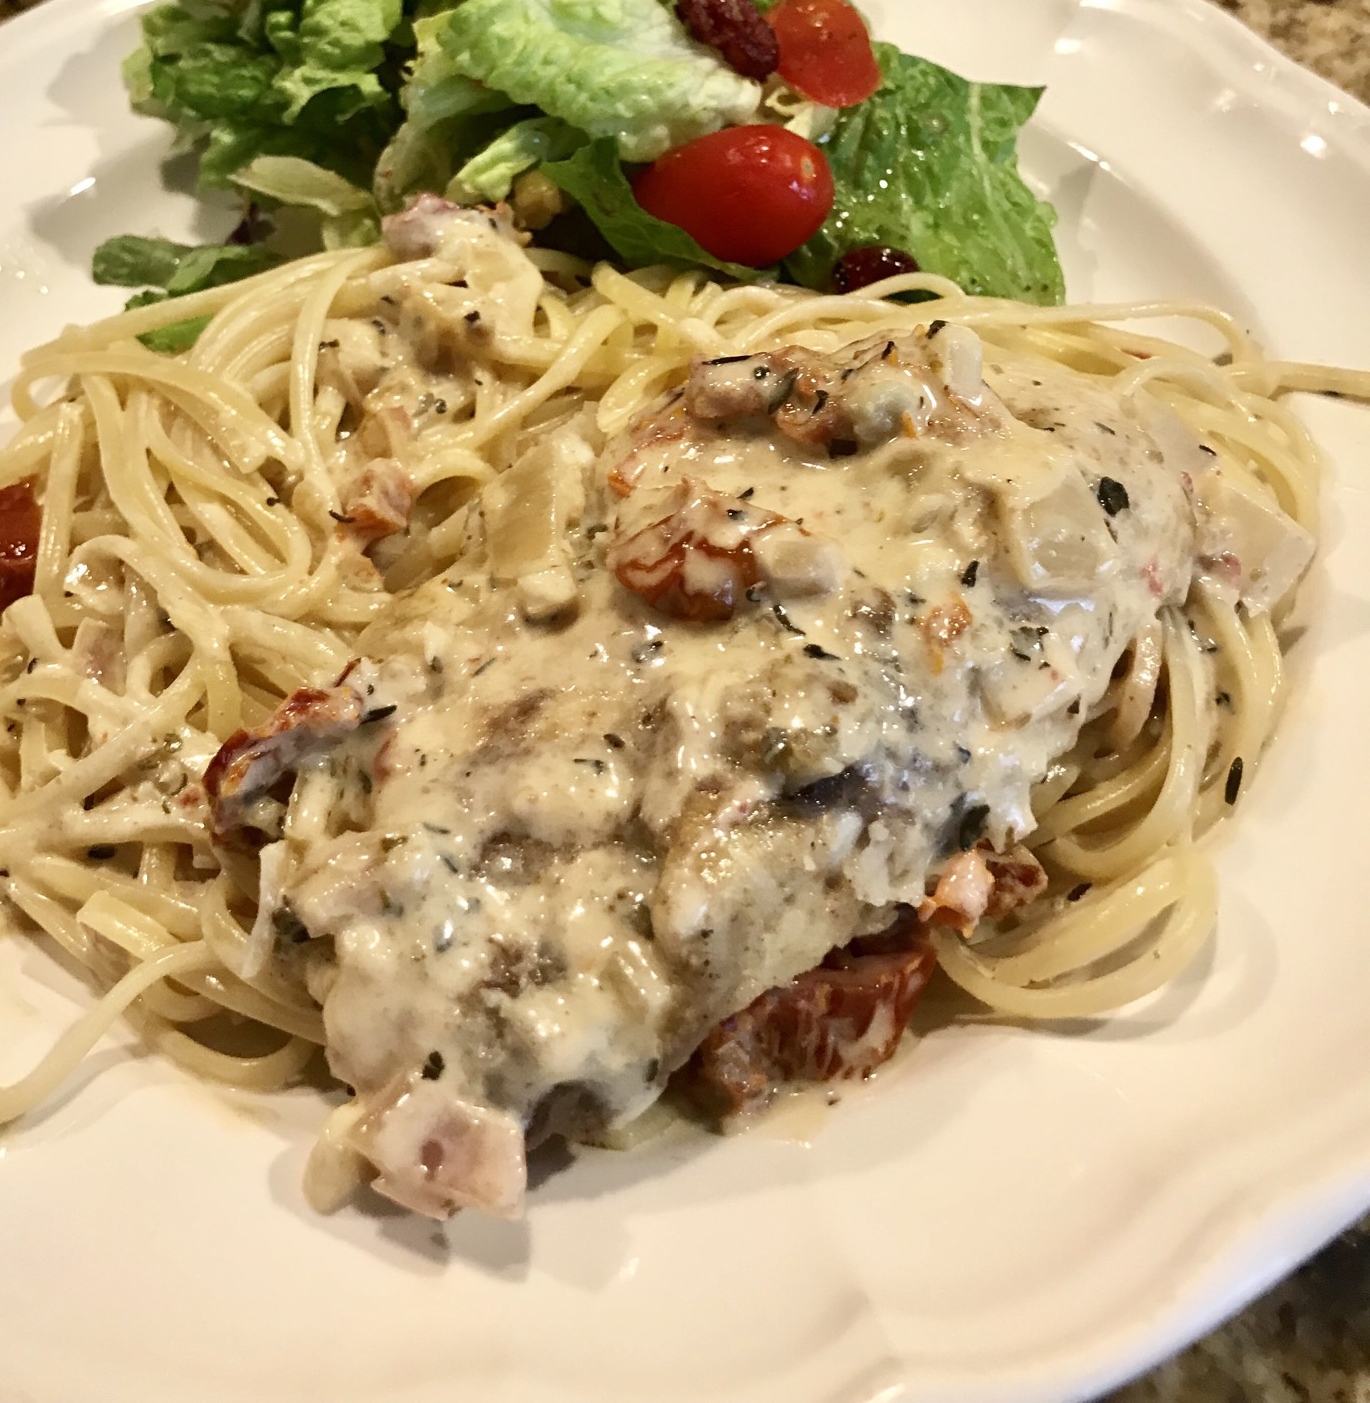 """""""This meal served with an intriguing cream sauce is actually an easy dish for beginners to prepare,"""" says kelly. """"It tastes like it came from a restaurant!"""" The cream sauce features shallot and garlic, a touch of vodka, lemon and lime juice, fish sauce, sun-dried tomatoes, fennel seeds, basil, thyme, and Worcestershire sauce."""